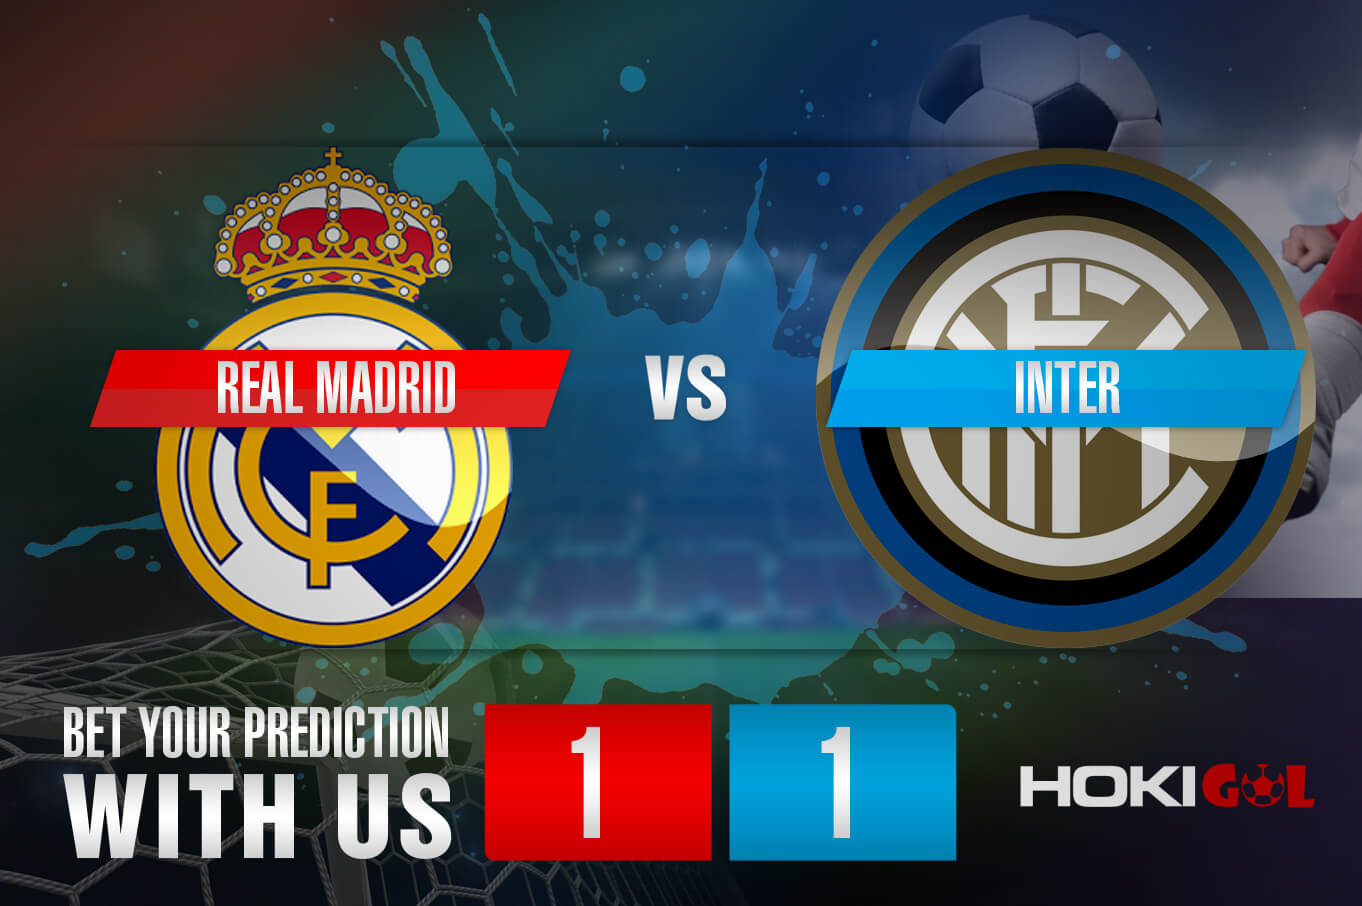 Prediksi Bola Real Madrid Vs Inter 4 November 2020